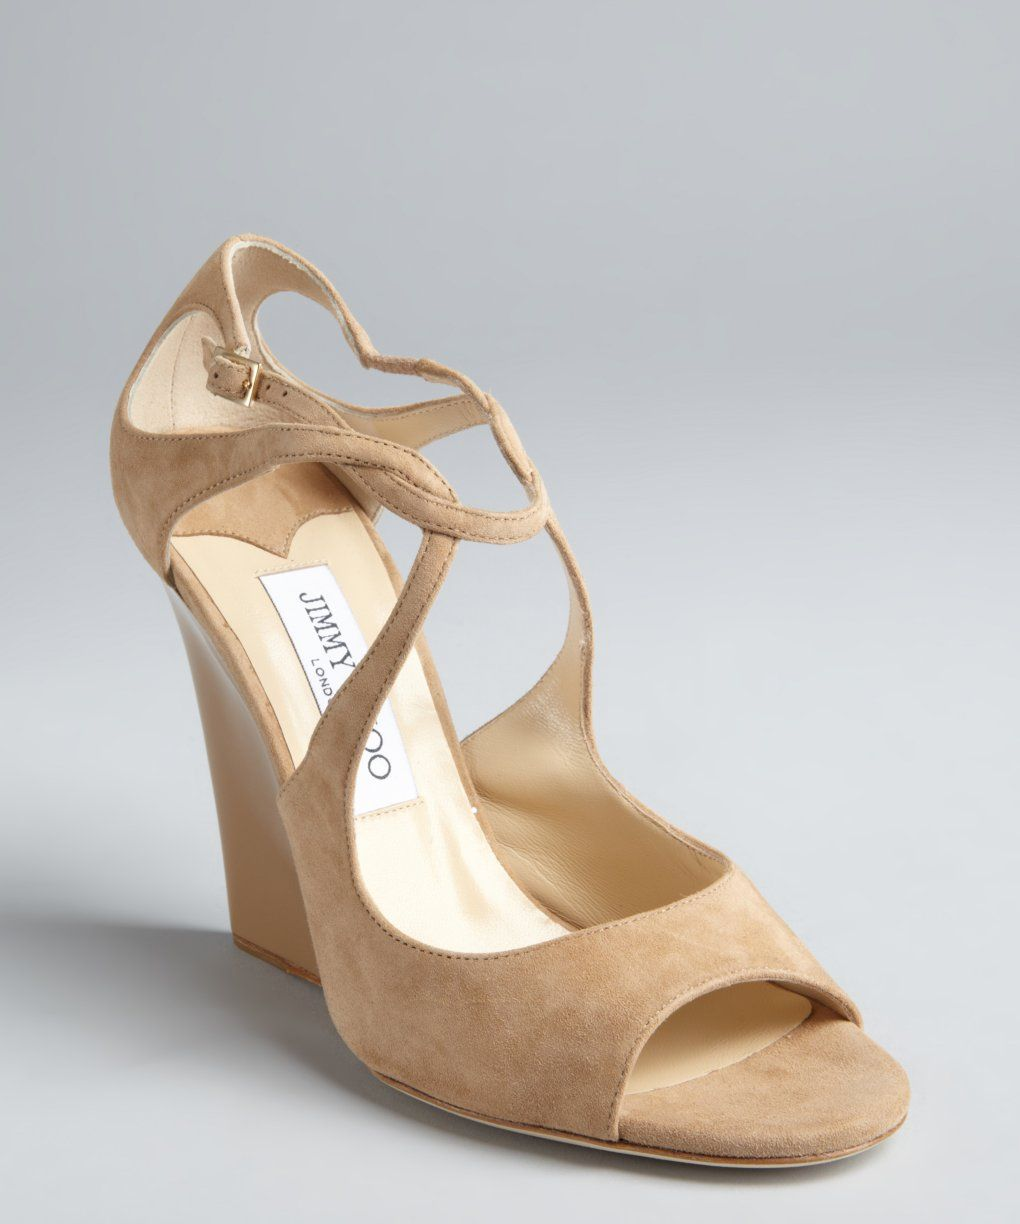 5b451bc1a81e86 Jimmy Choo nude suede Verena strappy wedge sandals